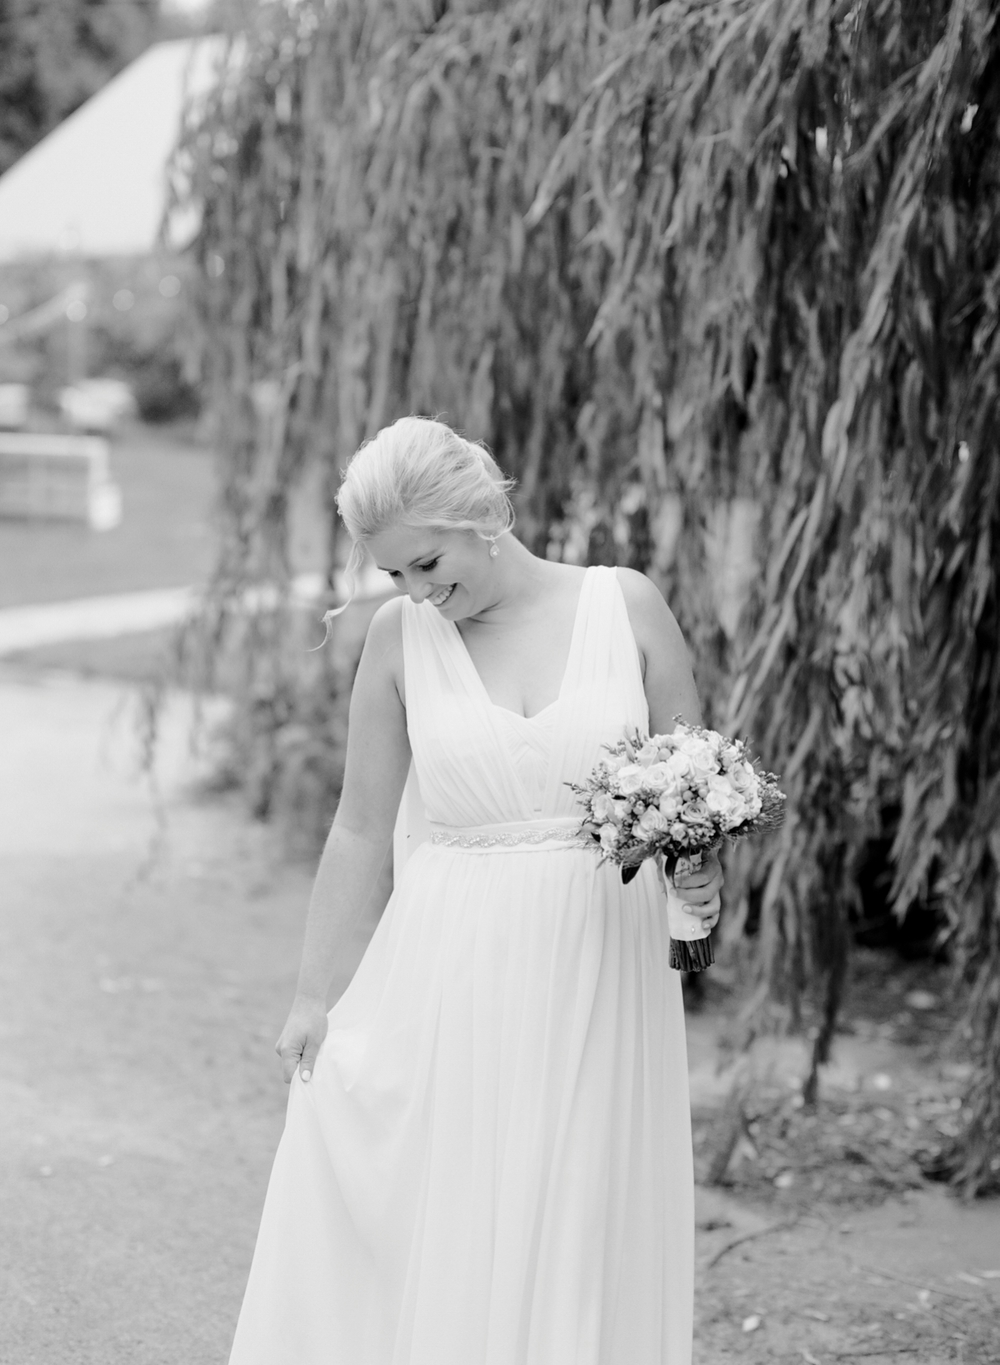 Monterose berry farm wedding by Mr Edwards Photography_0729.jpg